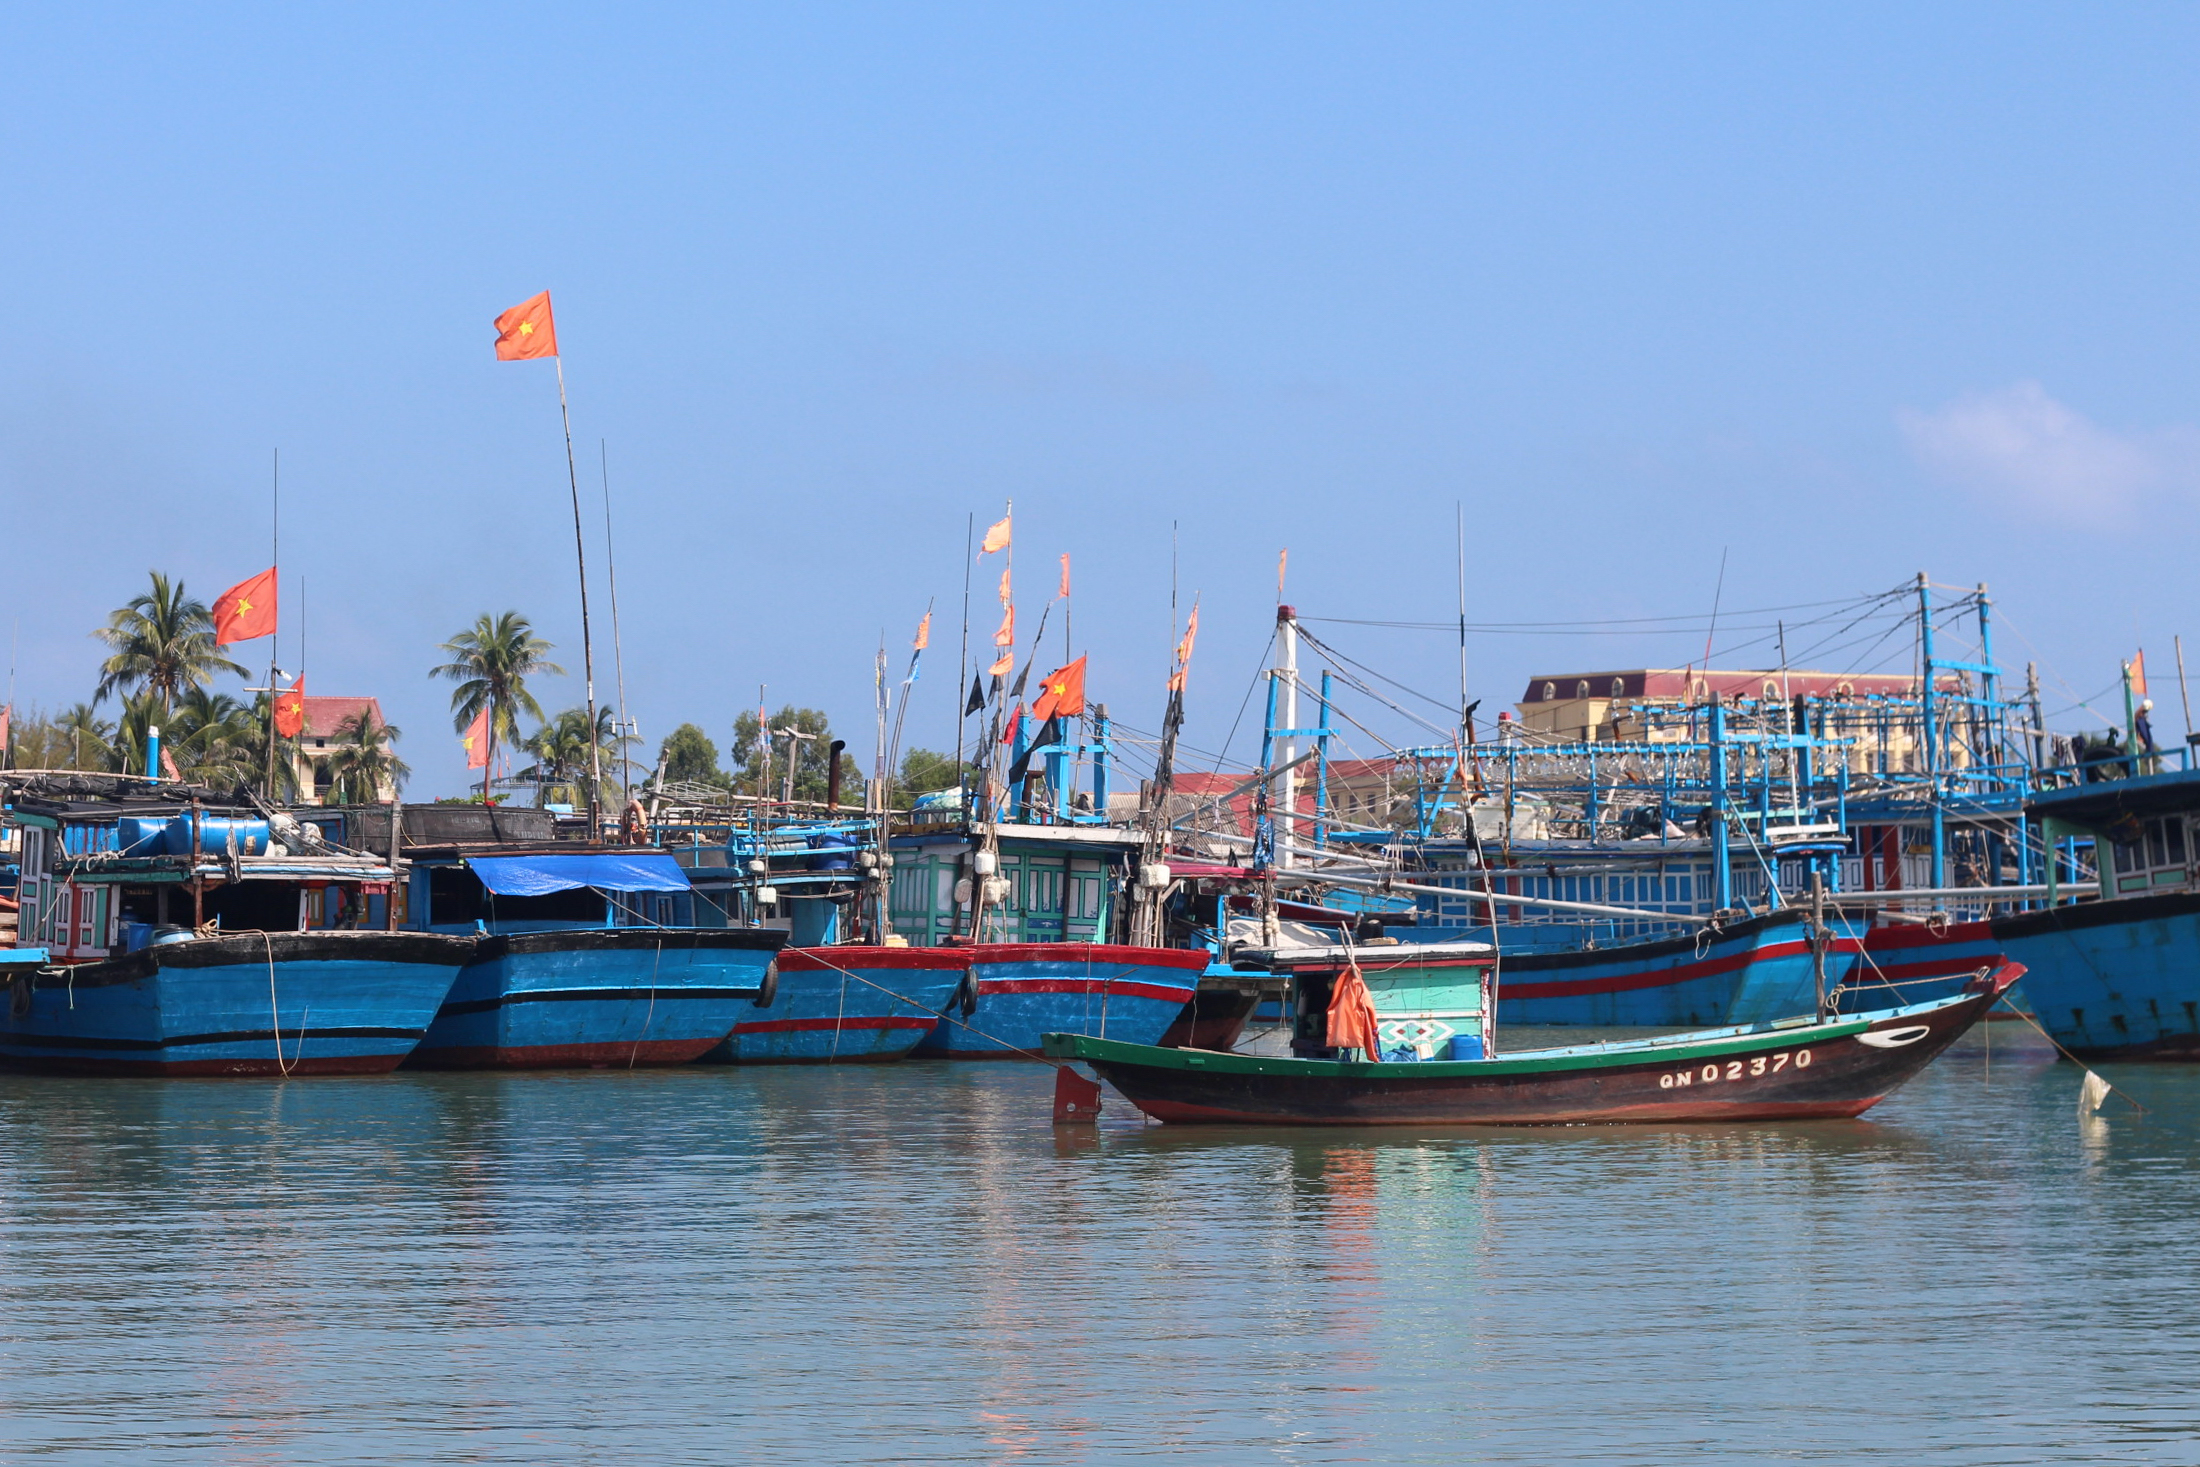 Hoi An Eco Coconut Tour - Fishing Boats | Alyssa & Carla